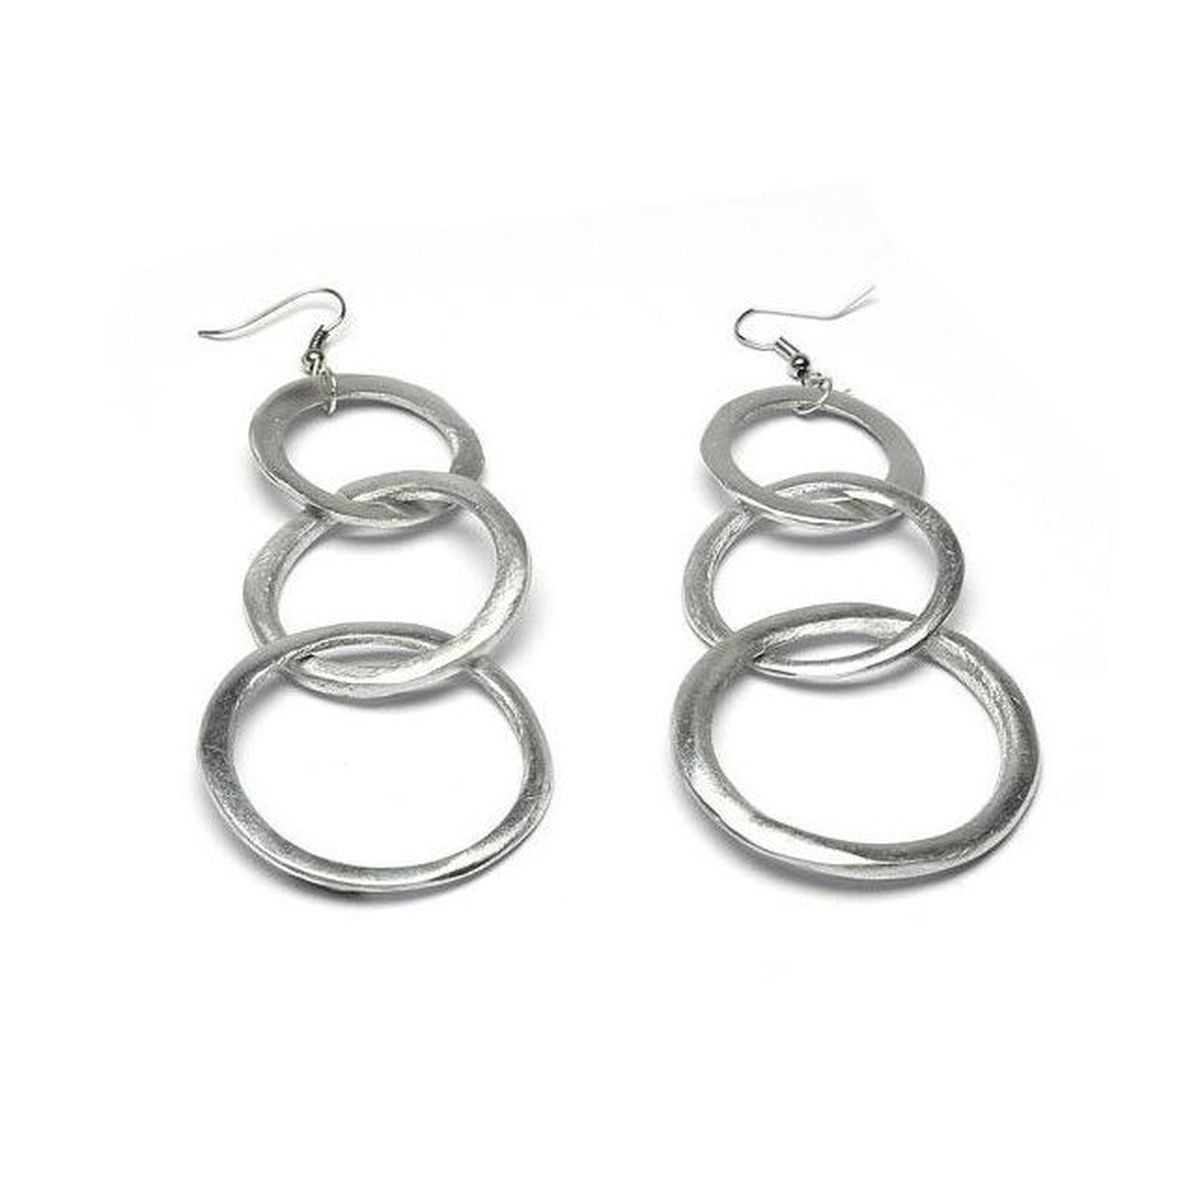 1. 3 circles pendant earrings Grey VestoPazzo